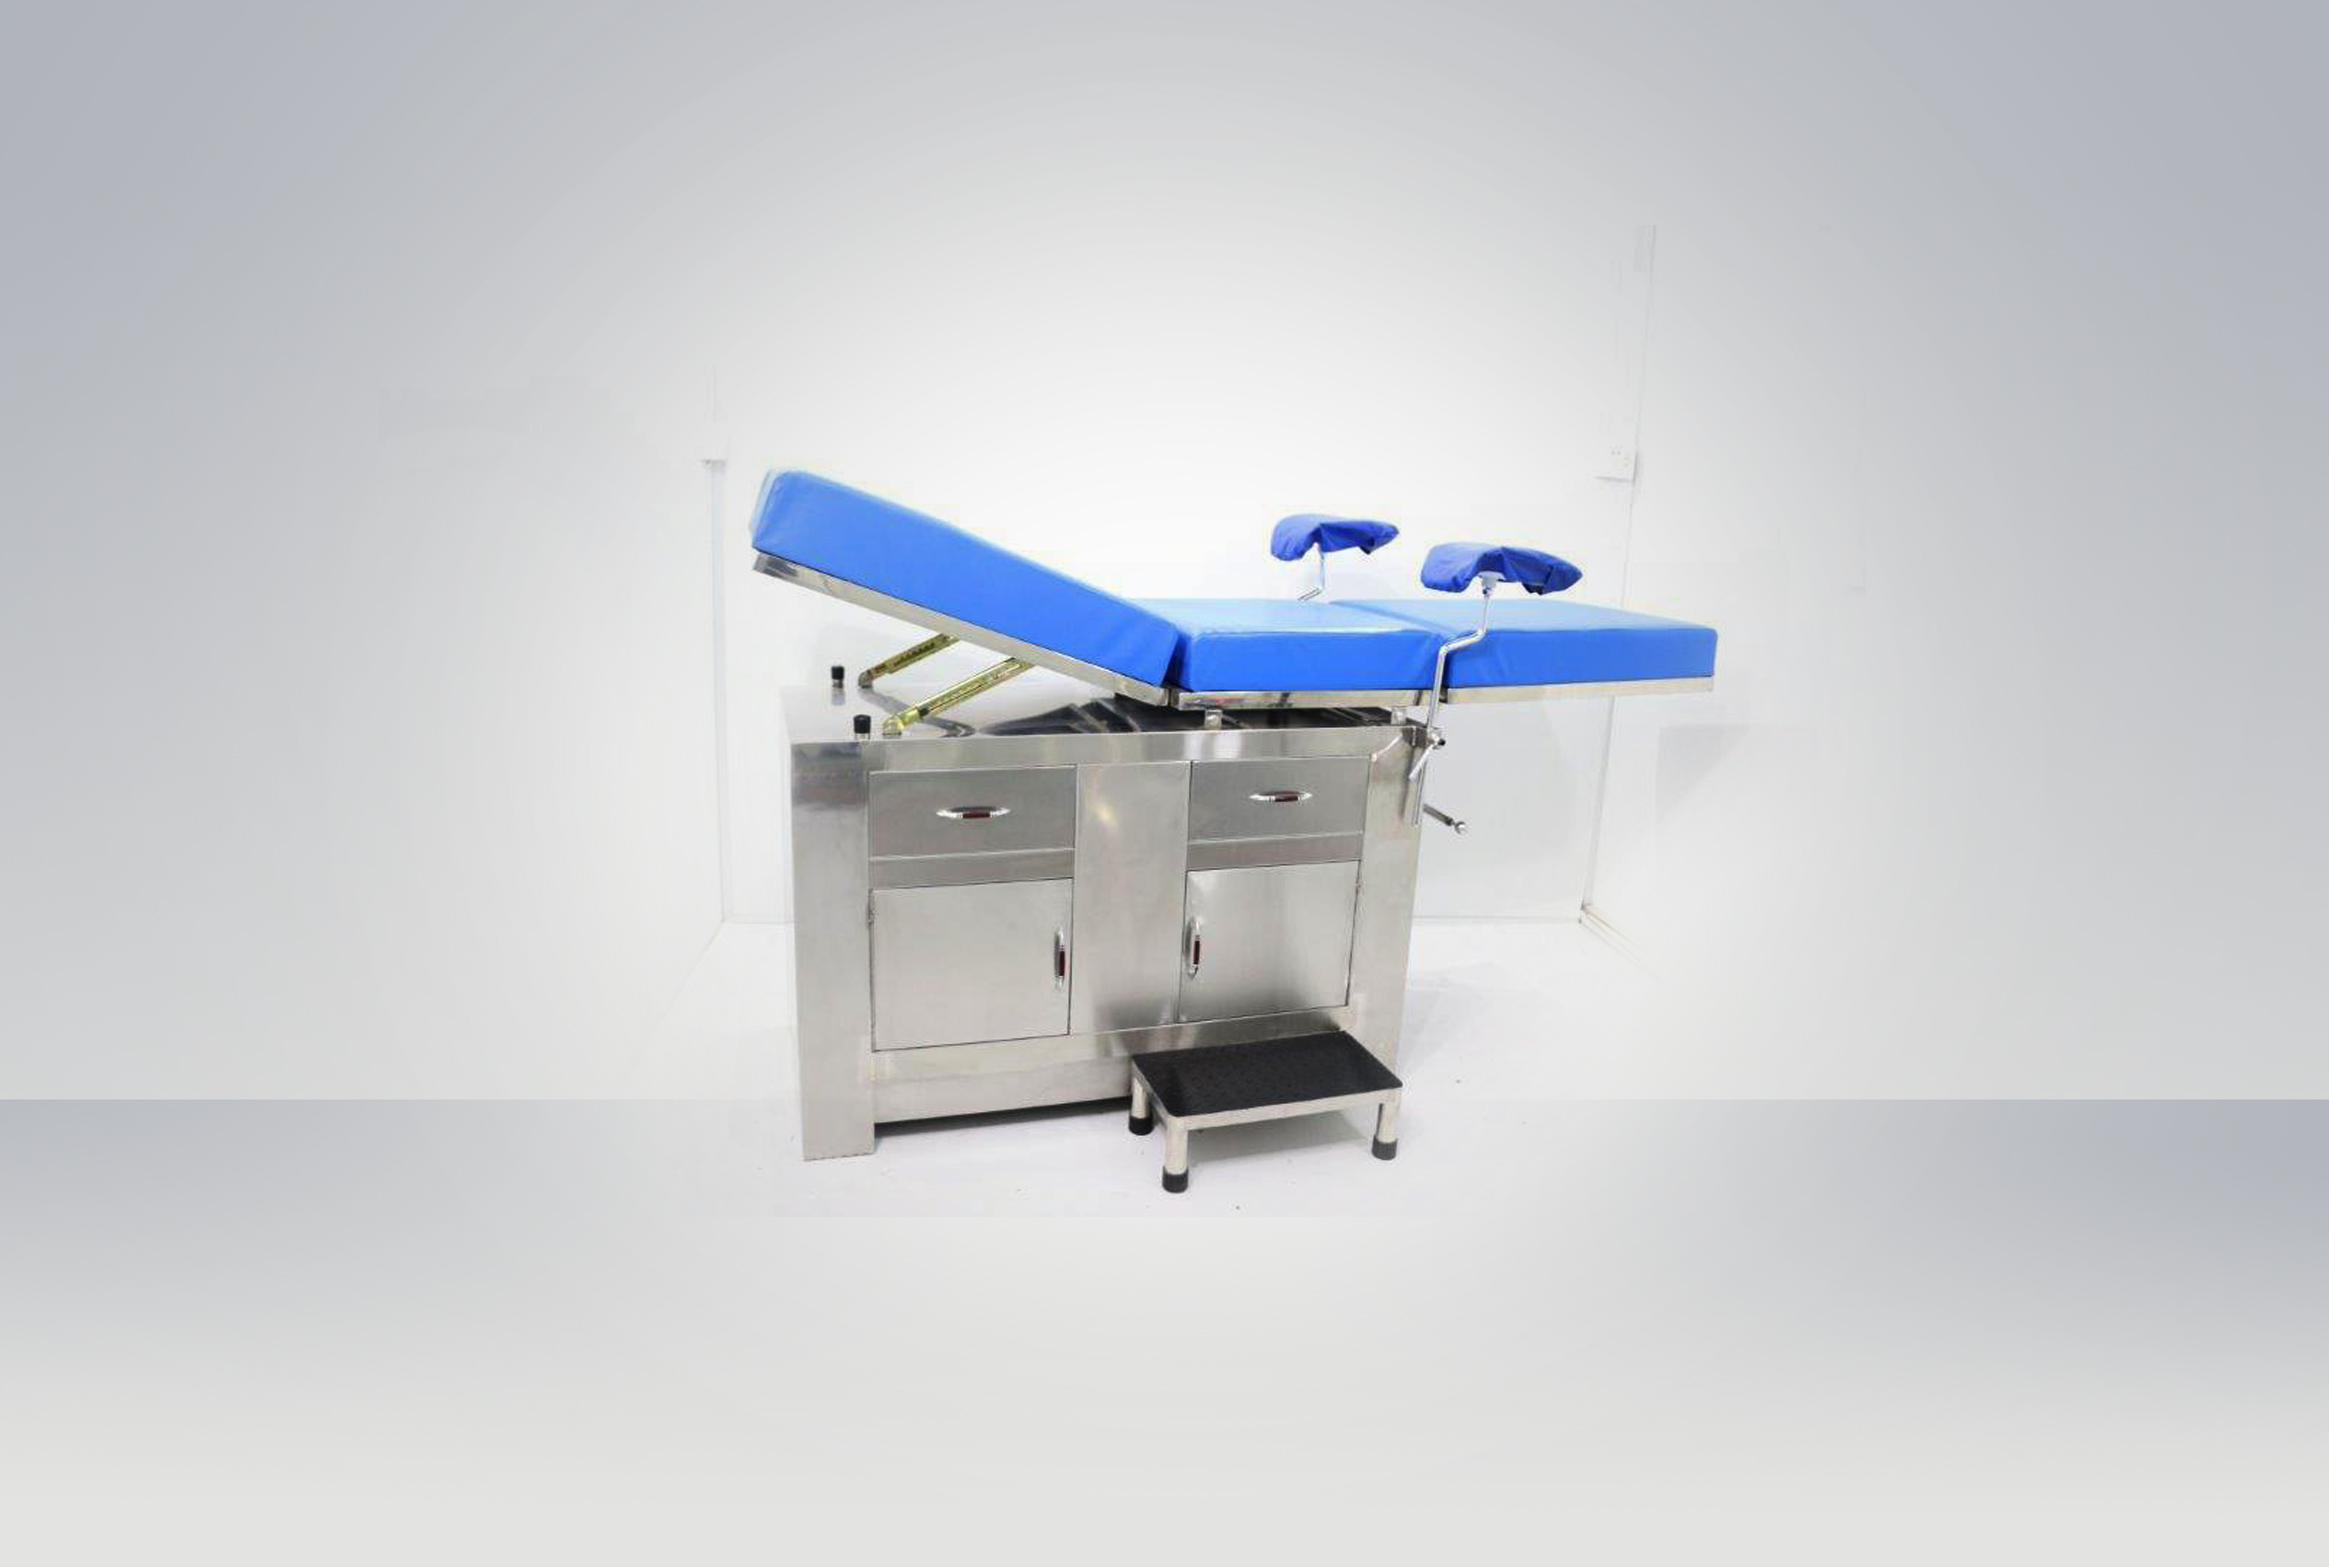 Box type Examination Bed